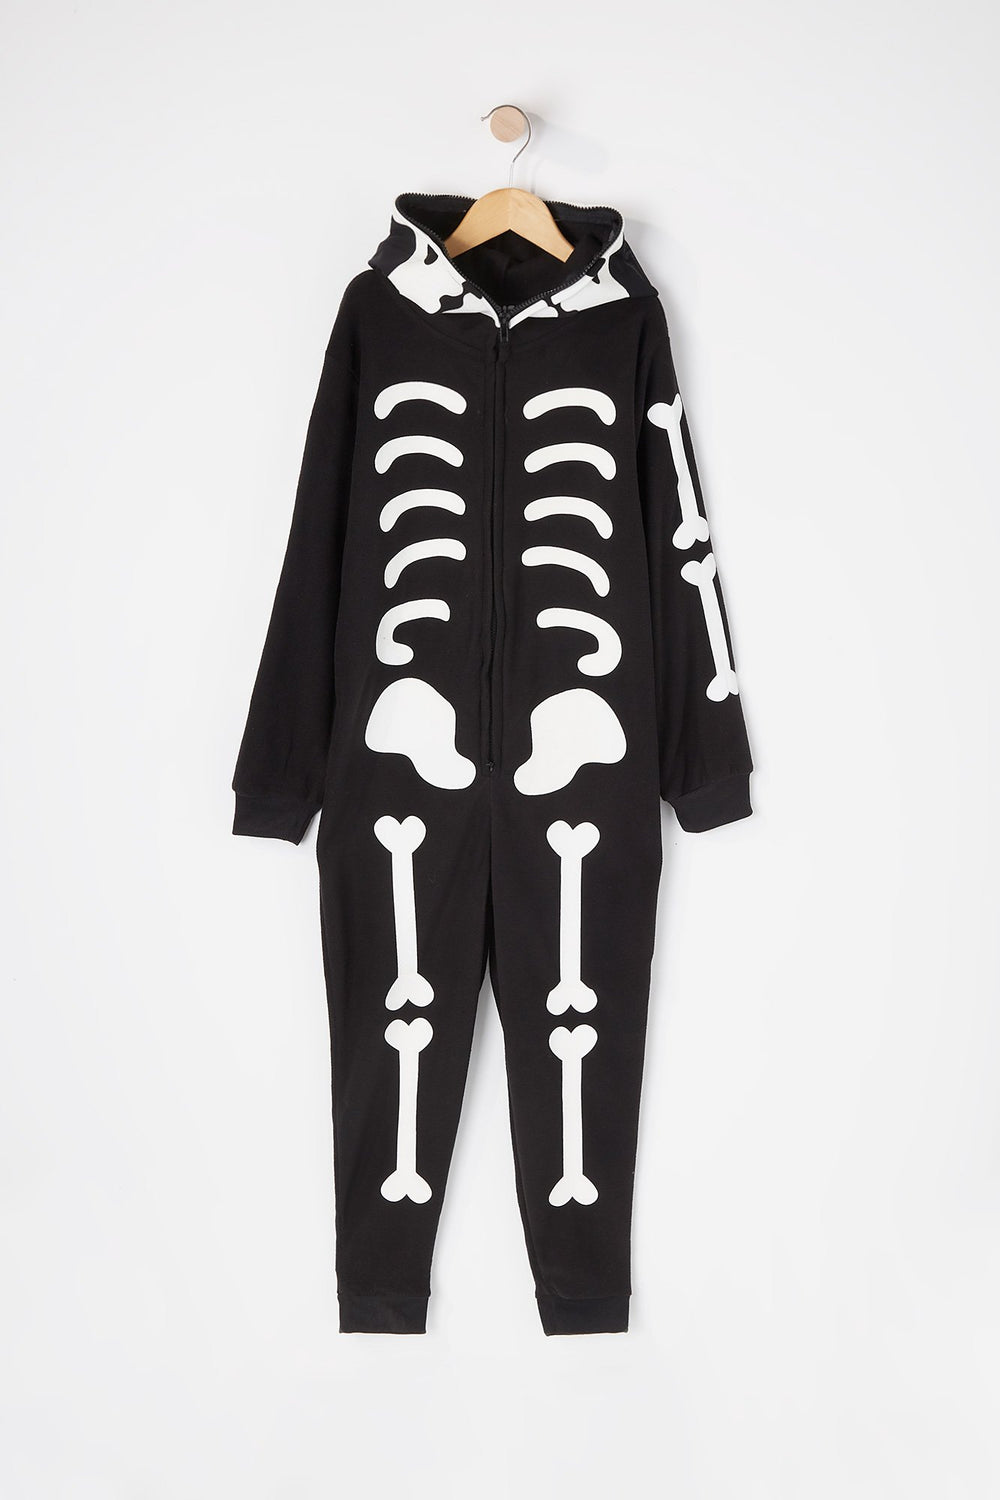 Youth Skeleton Onesie Black